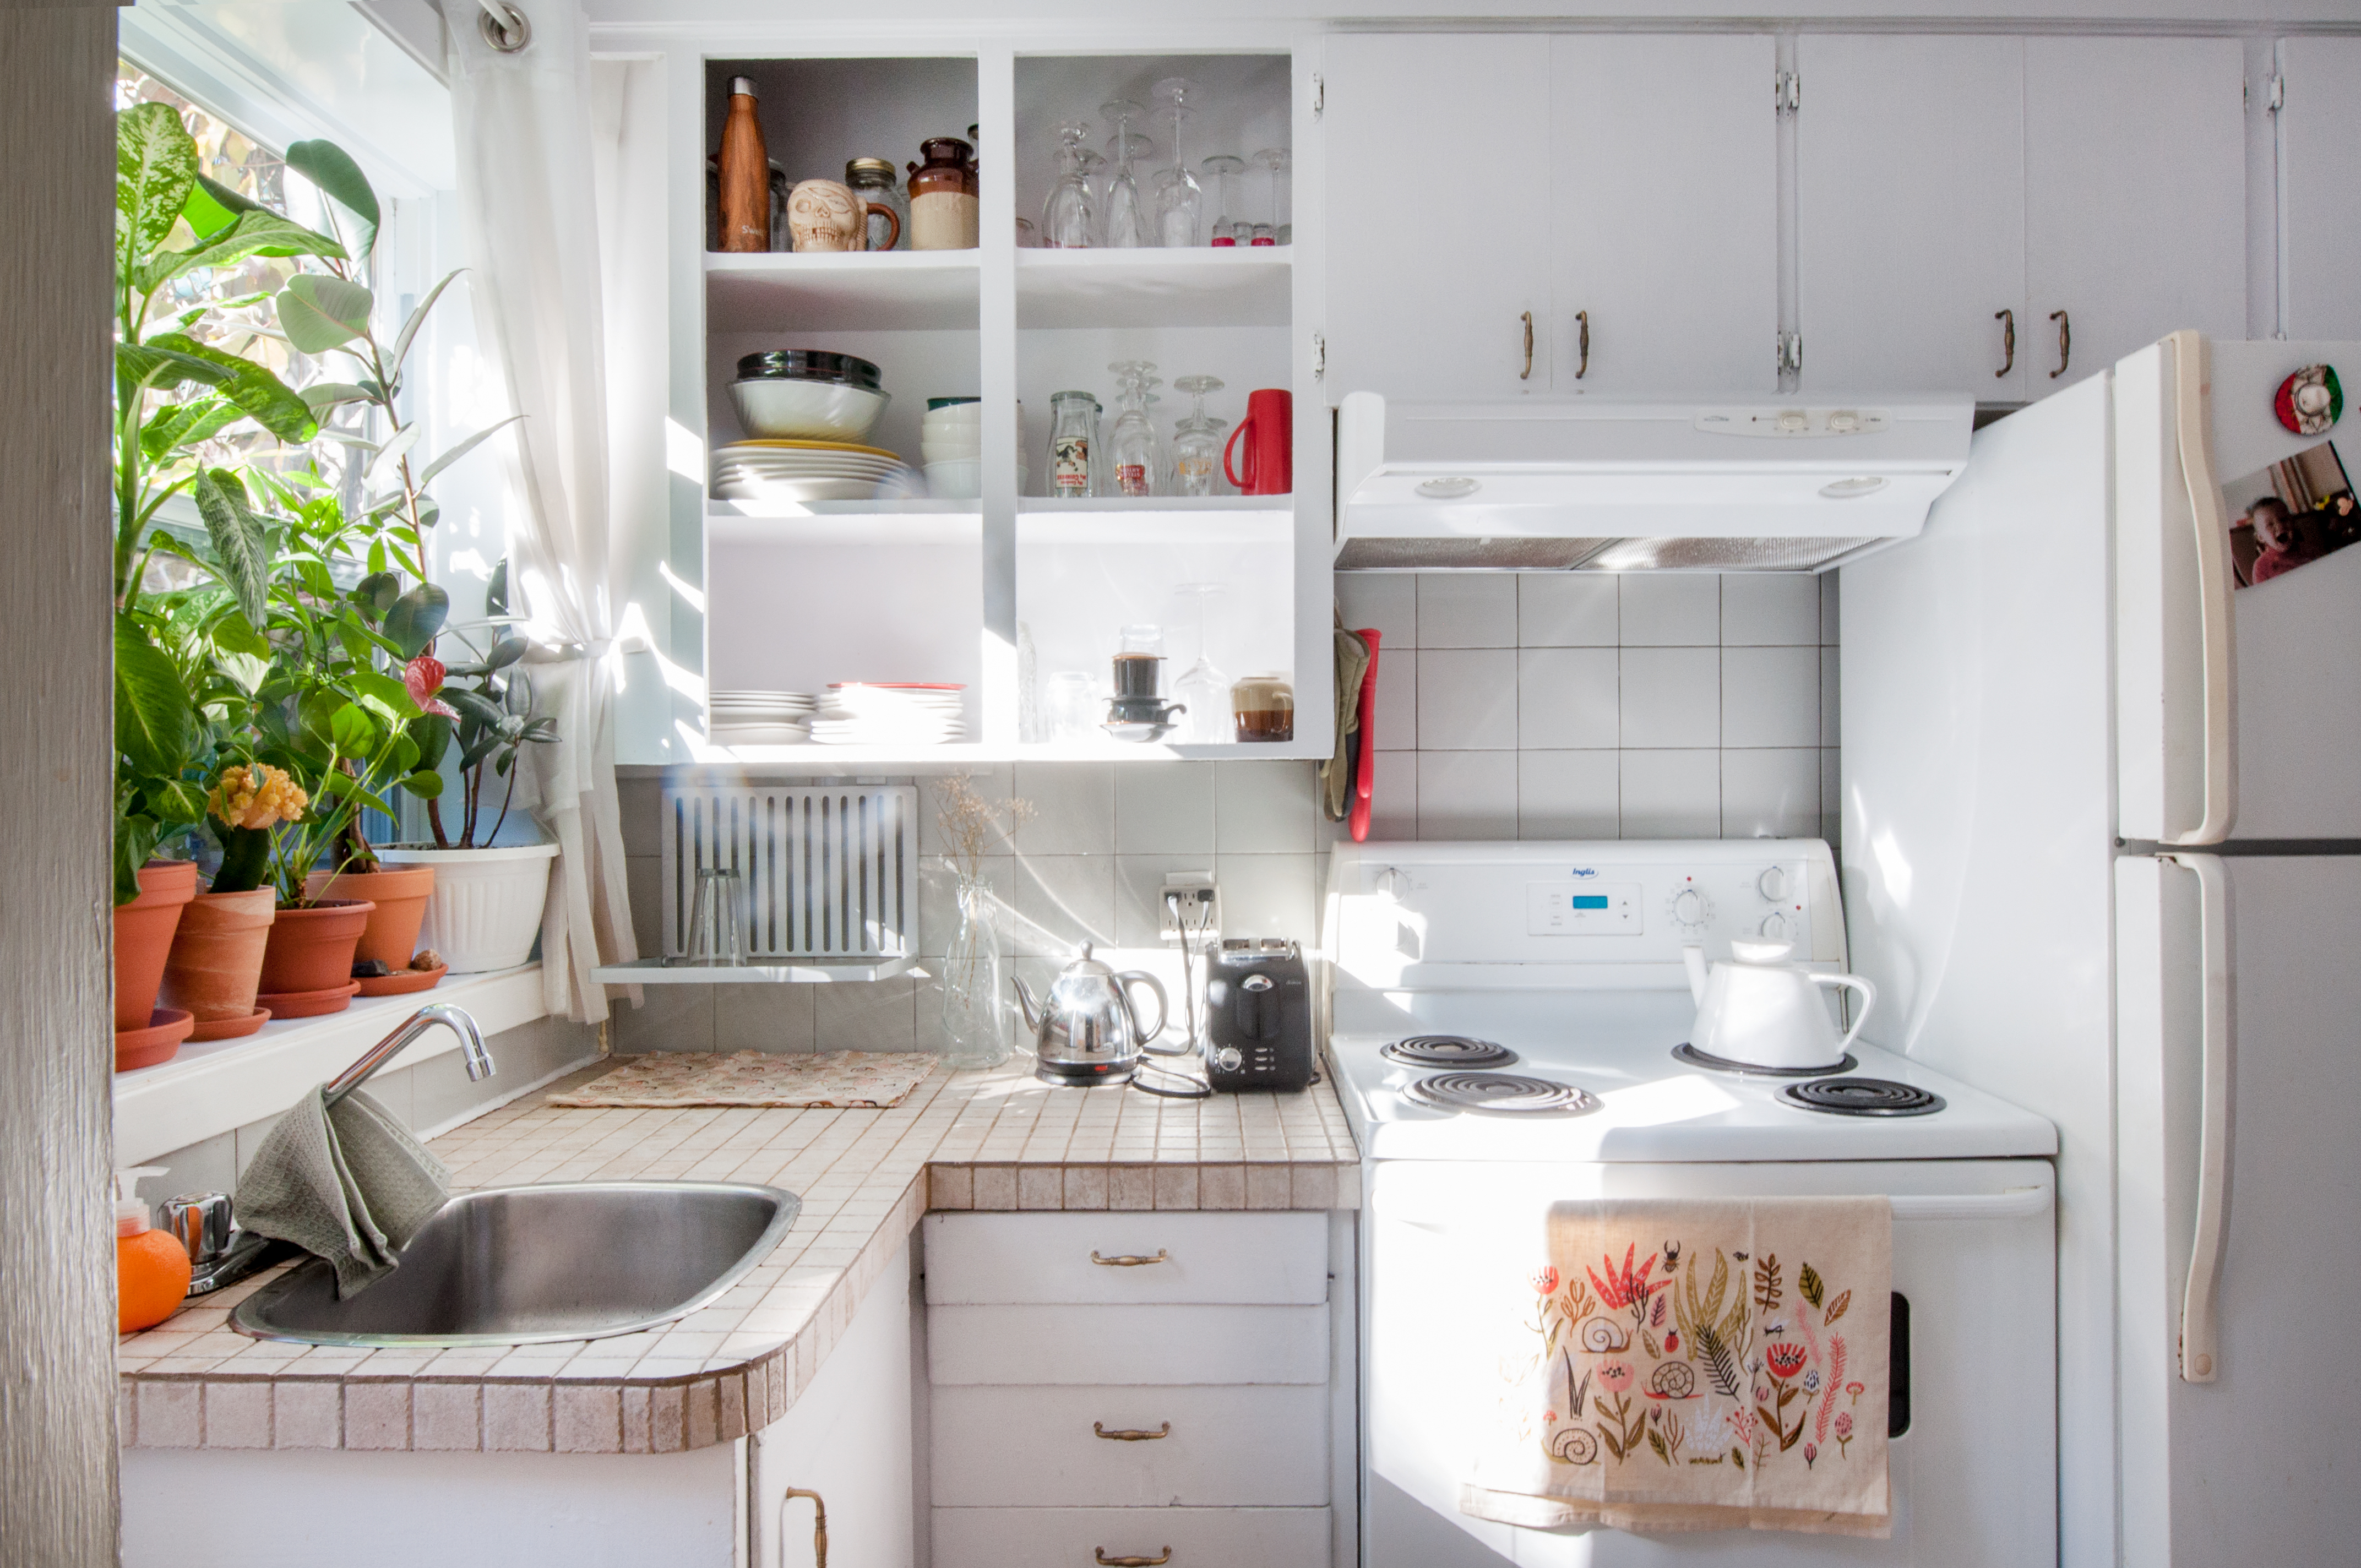 5 Kitchen Organizing Ideas To Steal From Savvy Dollar Store Shoppers